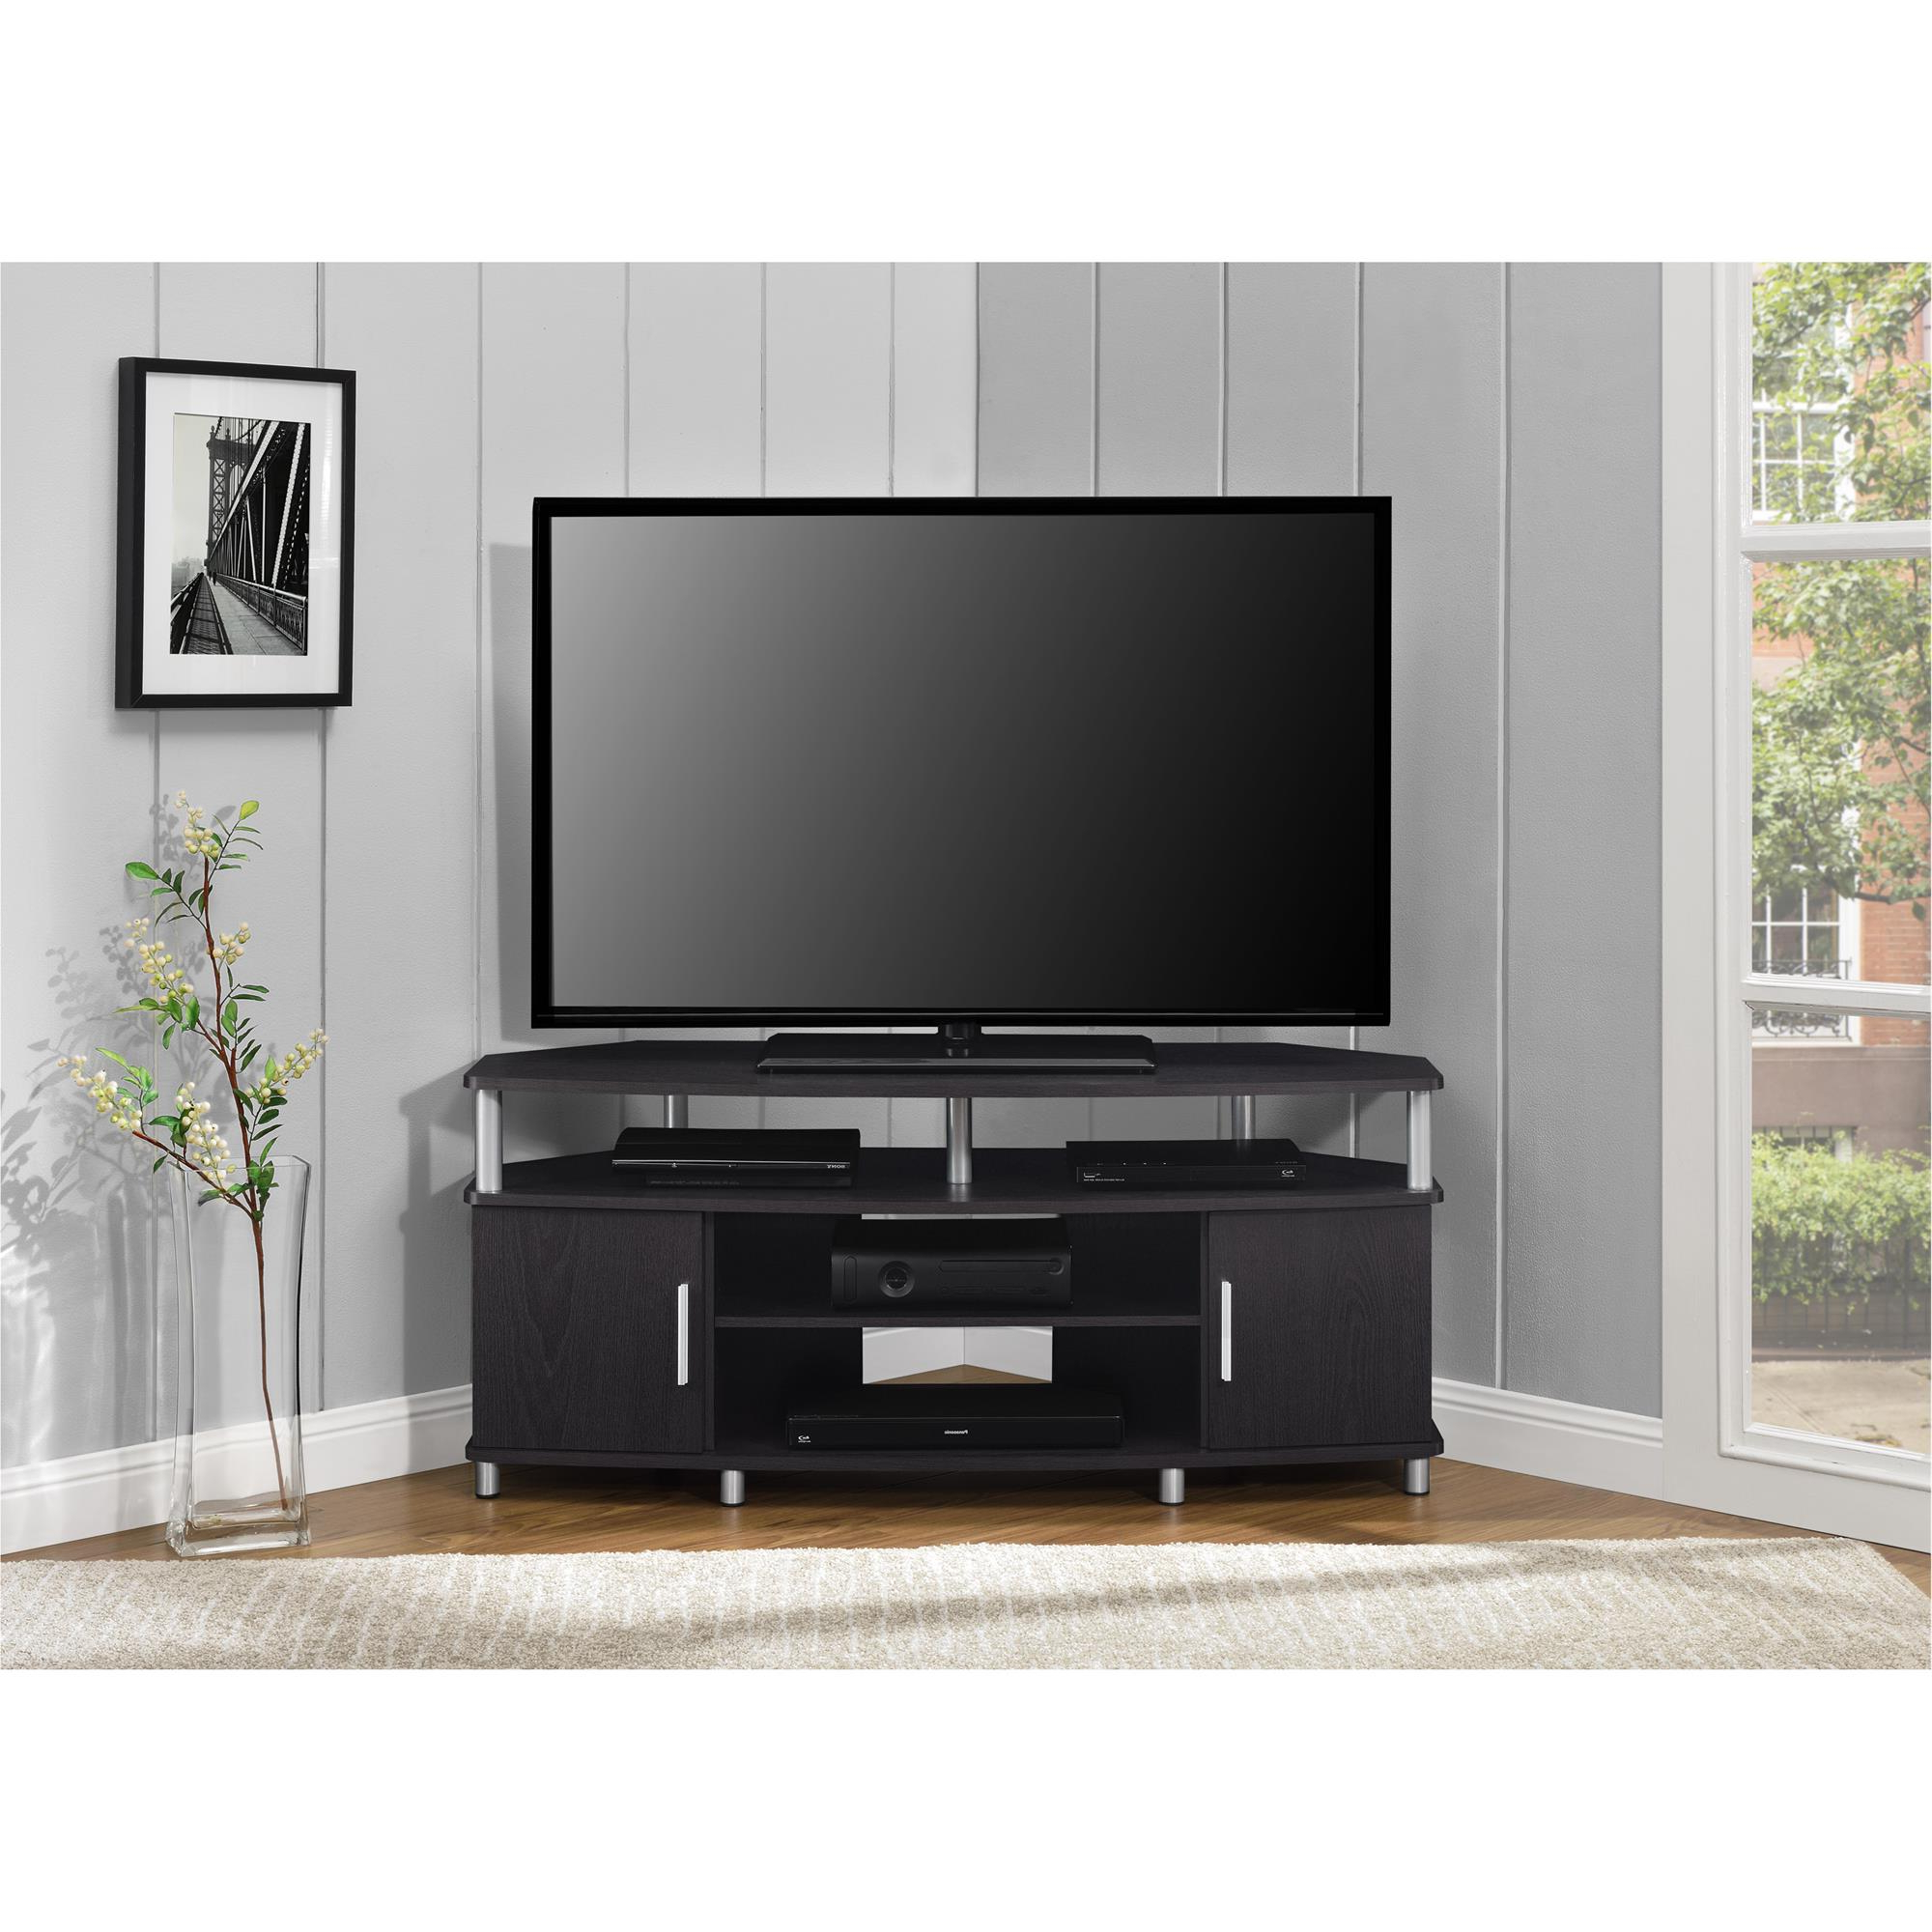 """Most Popular Ameriwood Home Carson Corner Tv Stand For Tvs Up To 50 With Tv Stands For Tvs Up To 50"""" (View 4 of 25)"""